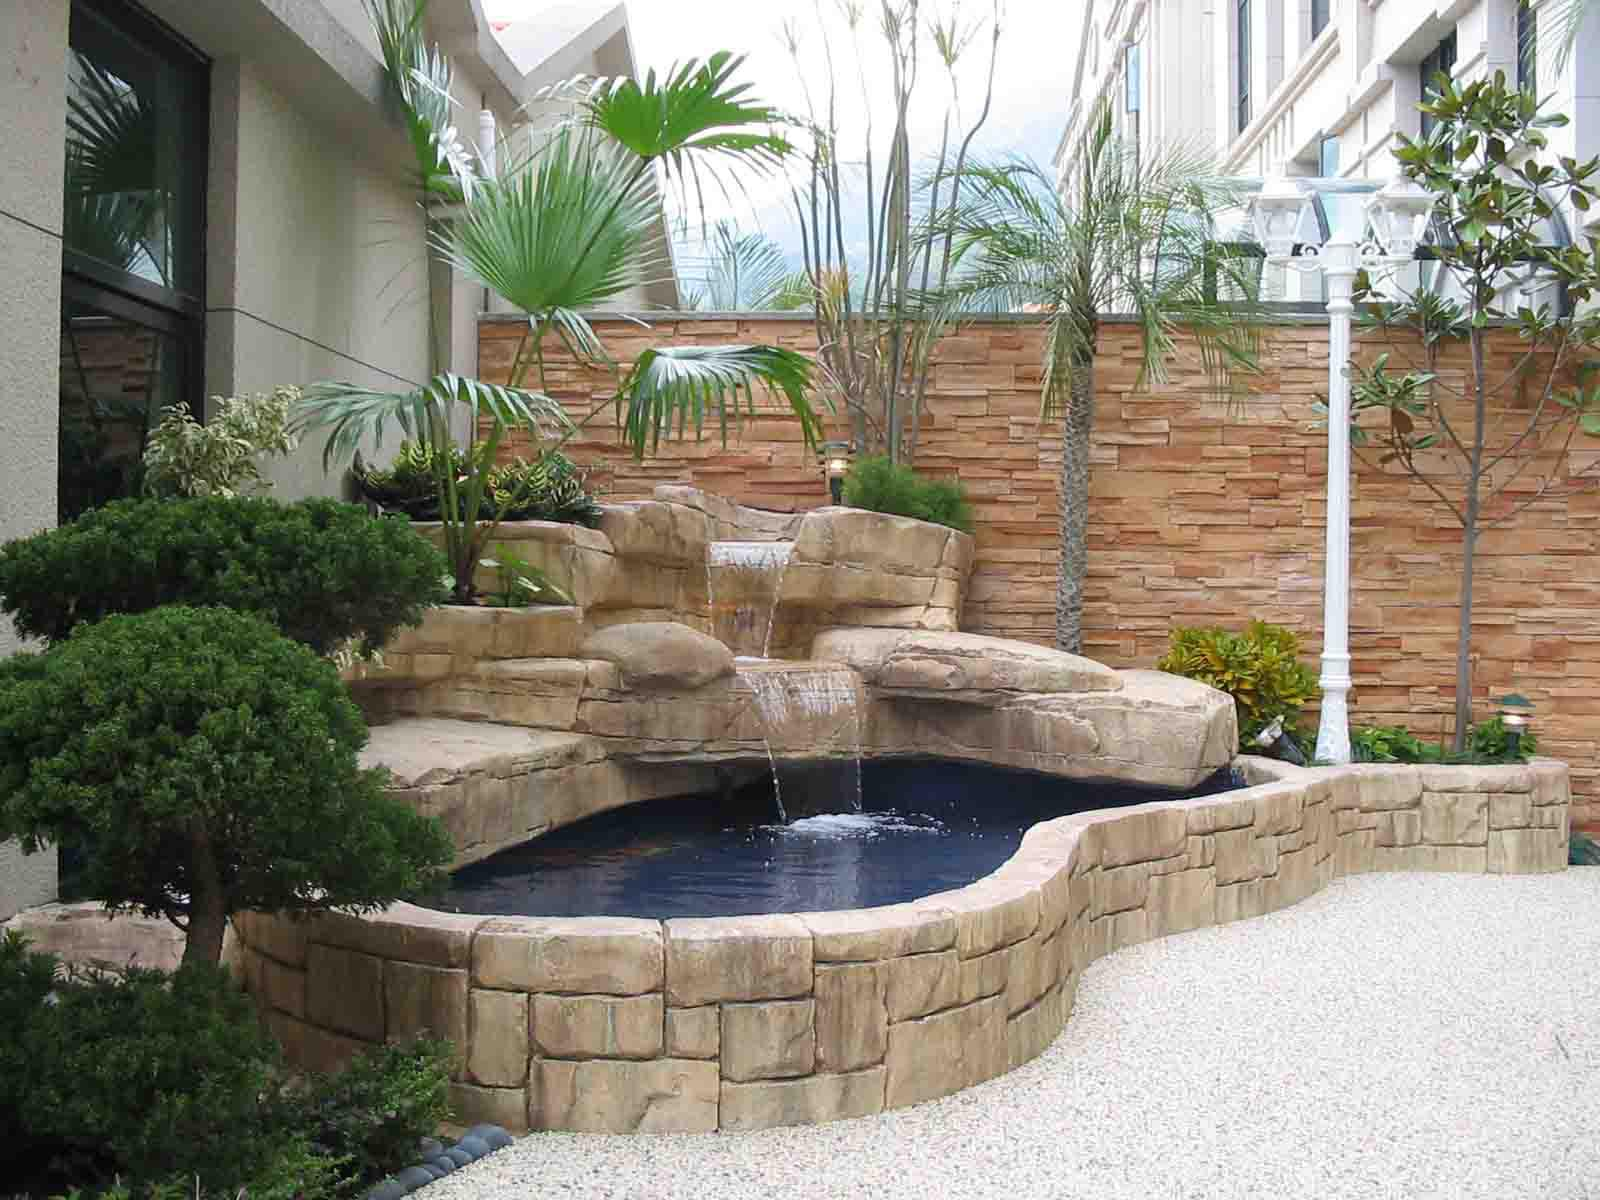 Fish pond garden design backyard design ideas for Fish pond decorations